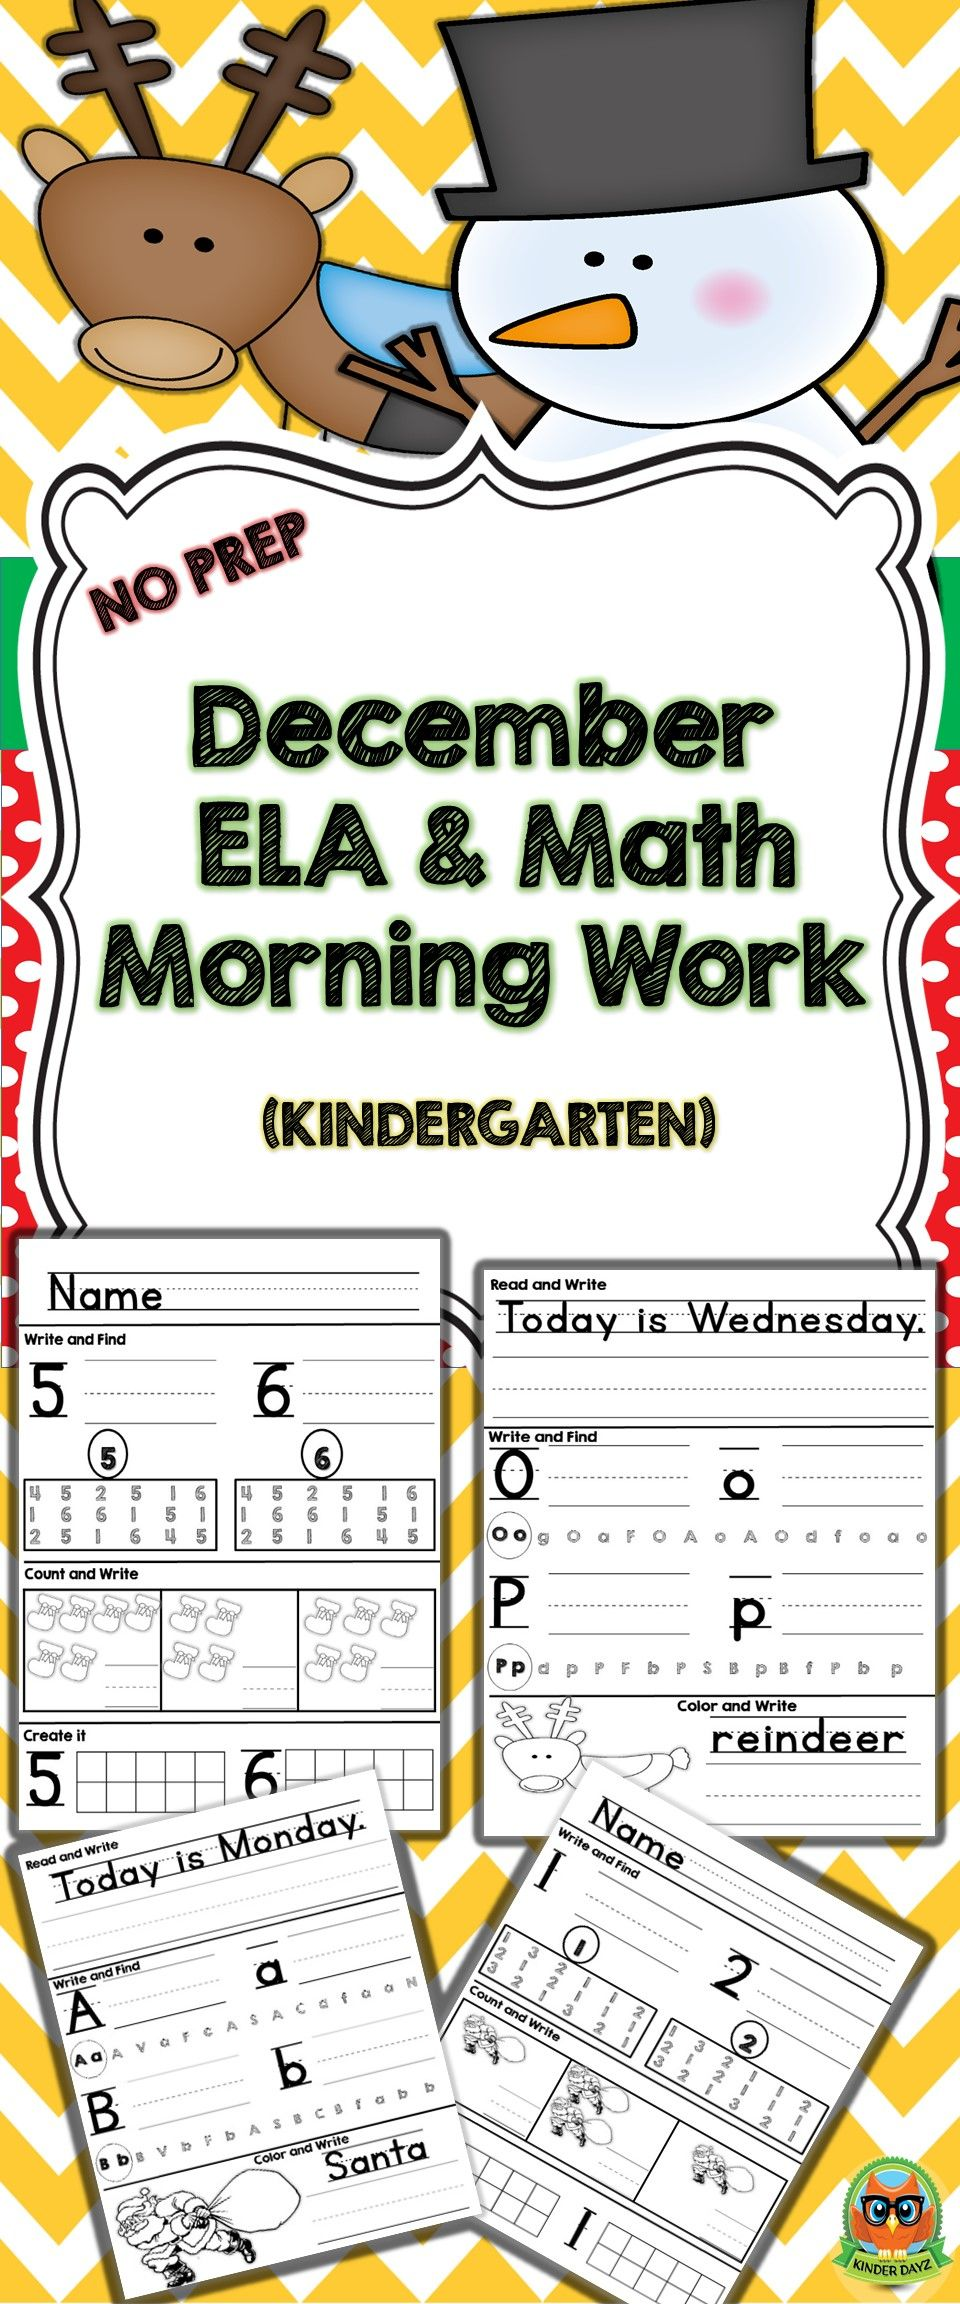 Uncategorized December Math Worksheets morning work early finishers december and activities christmas themed packet ela math perfect for pre k or kindergarteners contains 17 math